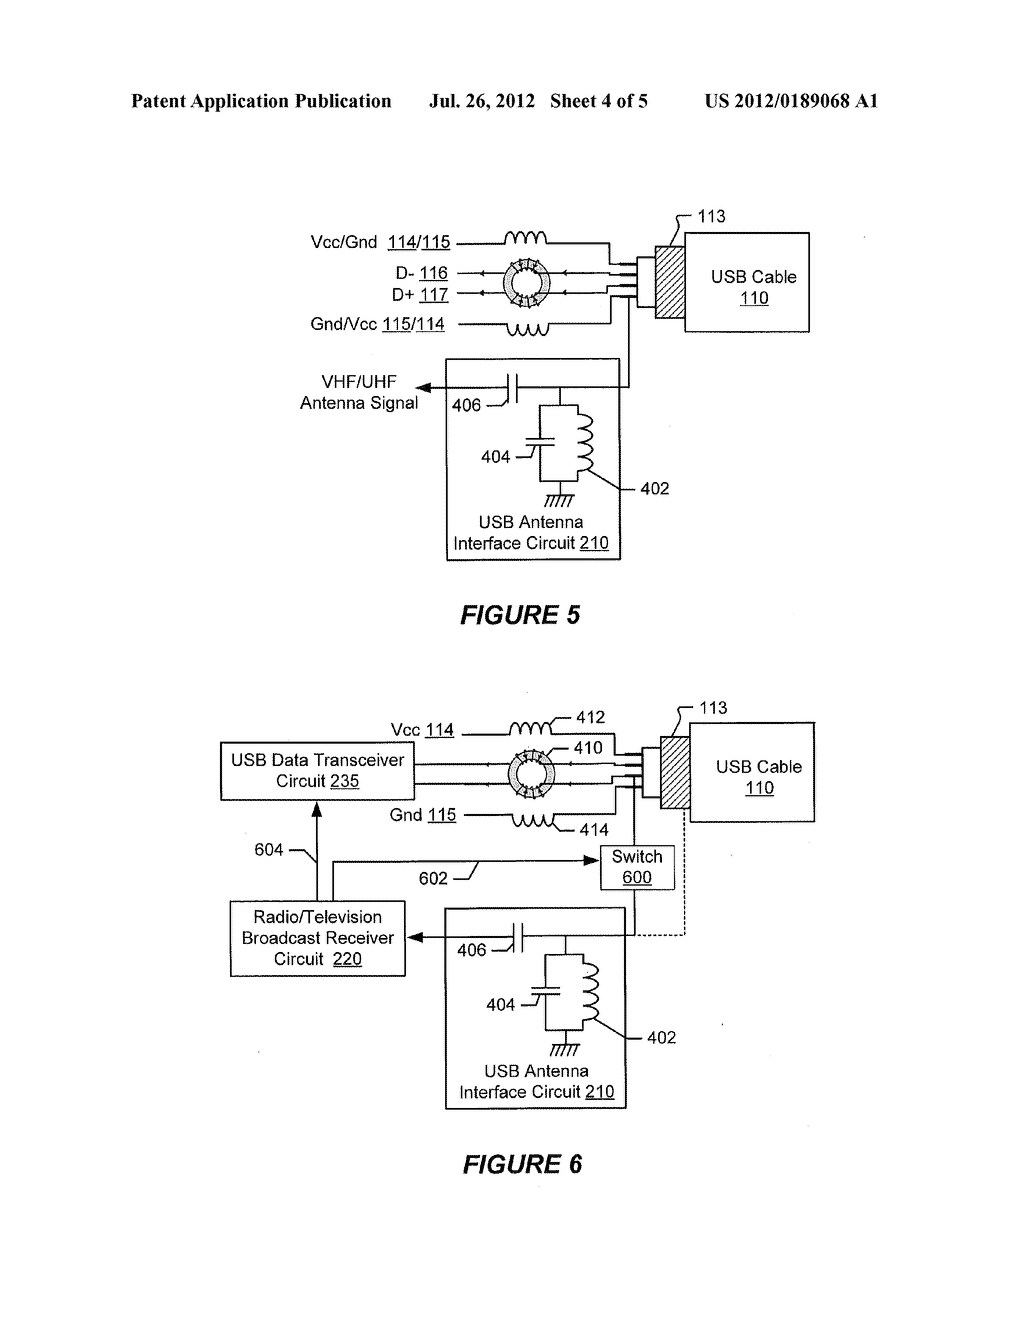 Electronic Terminals And Methods Using A Usb Cable As Rf Broadcast Antenna Circuit Diagram Signal Schematic Image 05